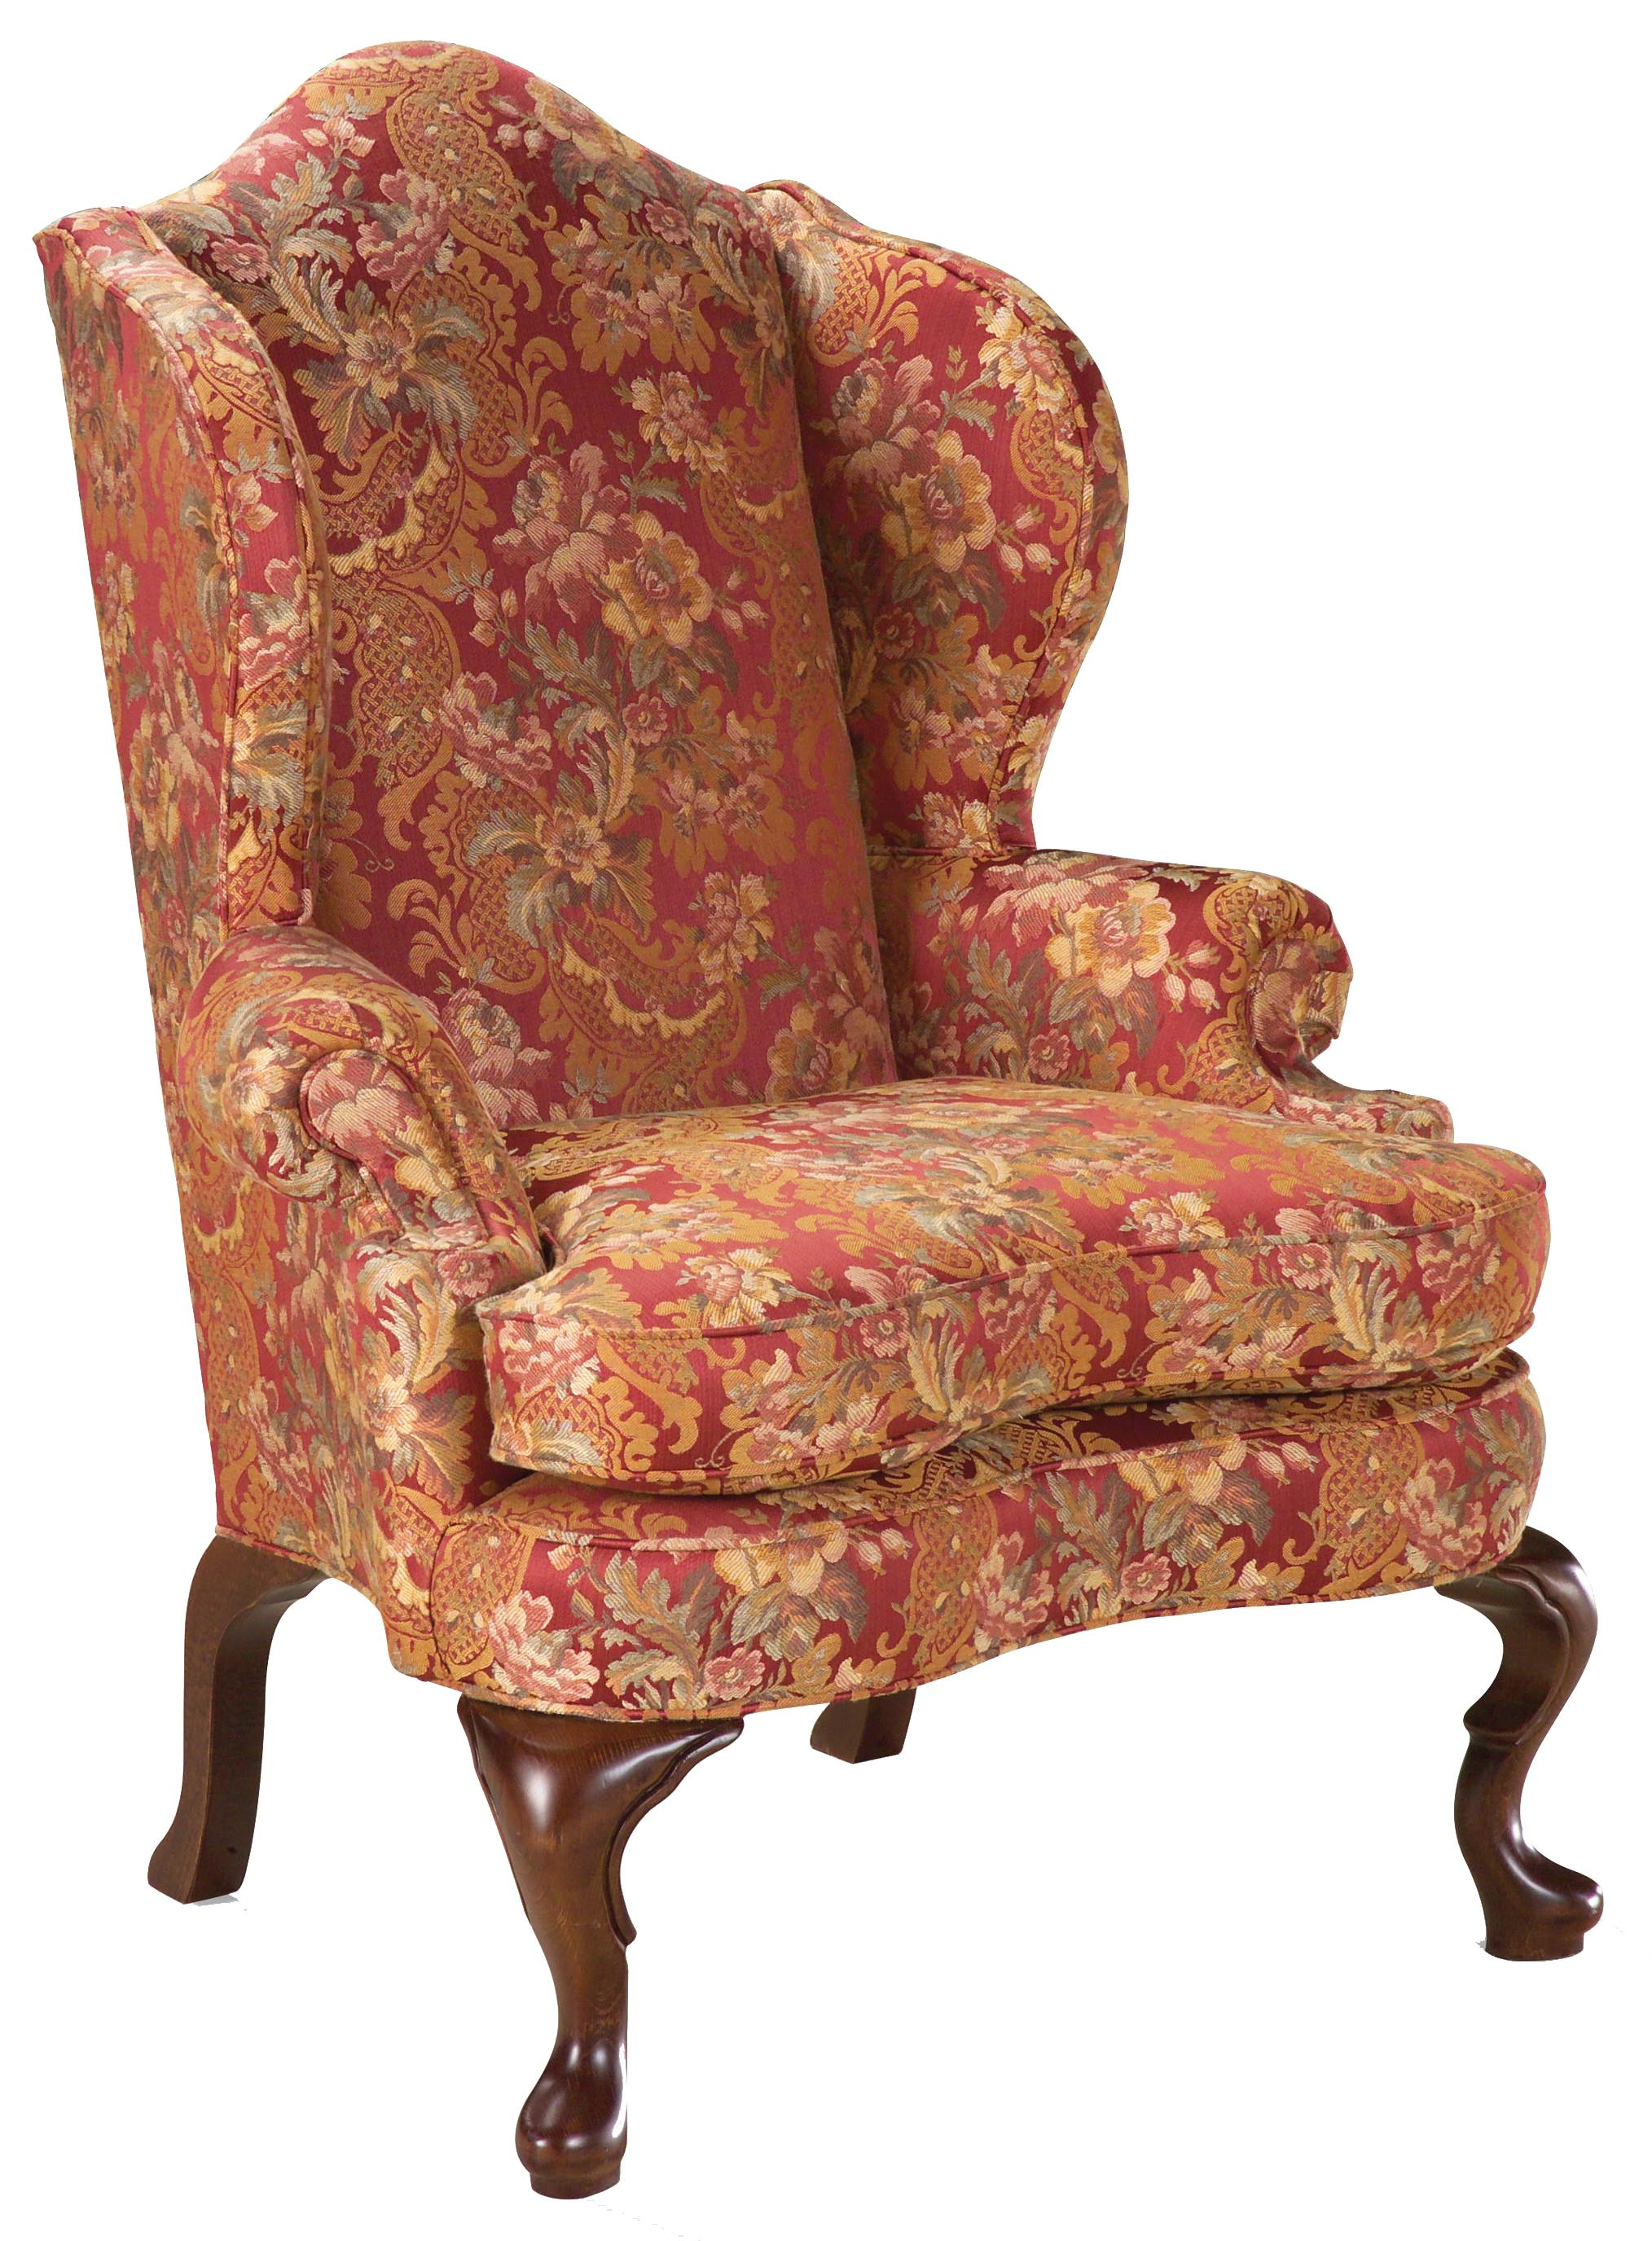 High Back Wing Chair Fairfield Chairs 5352 01 High Back Wing Chair In The